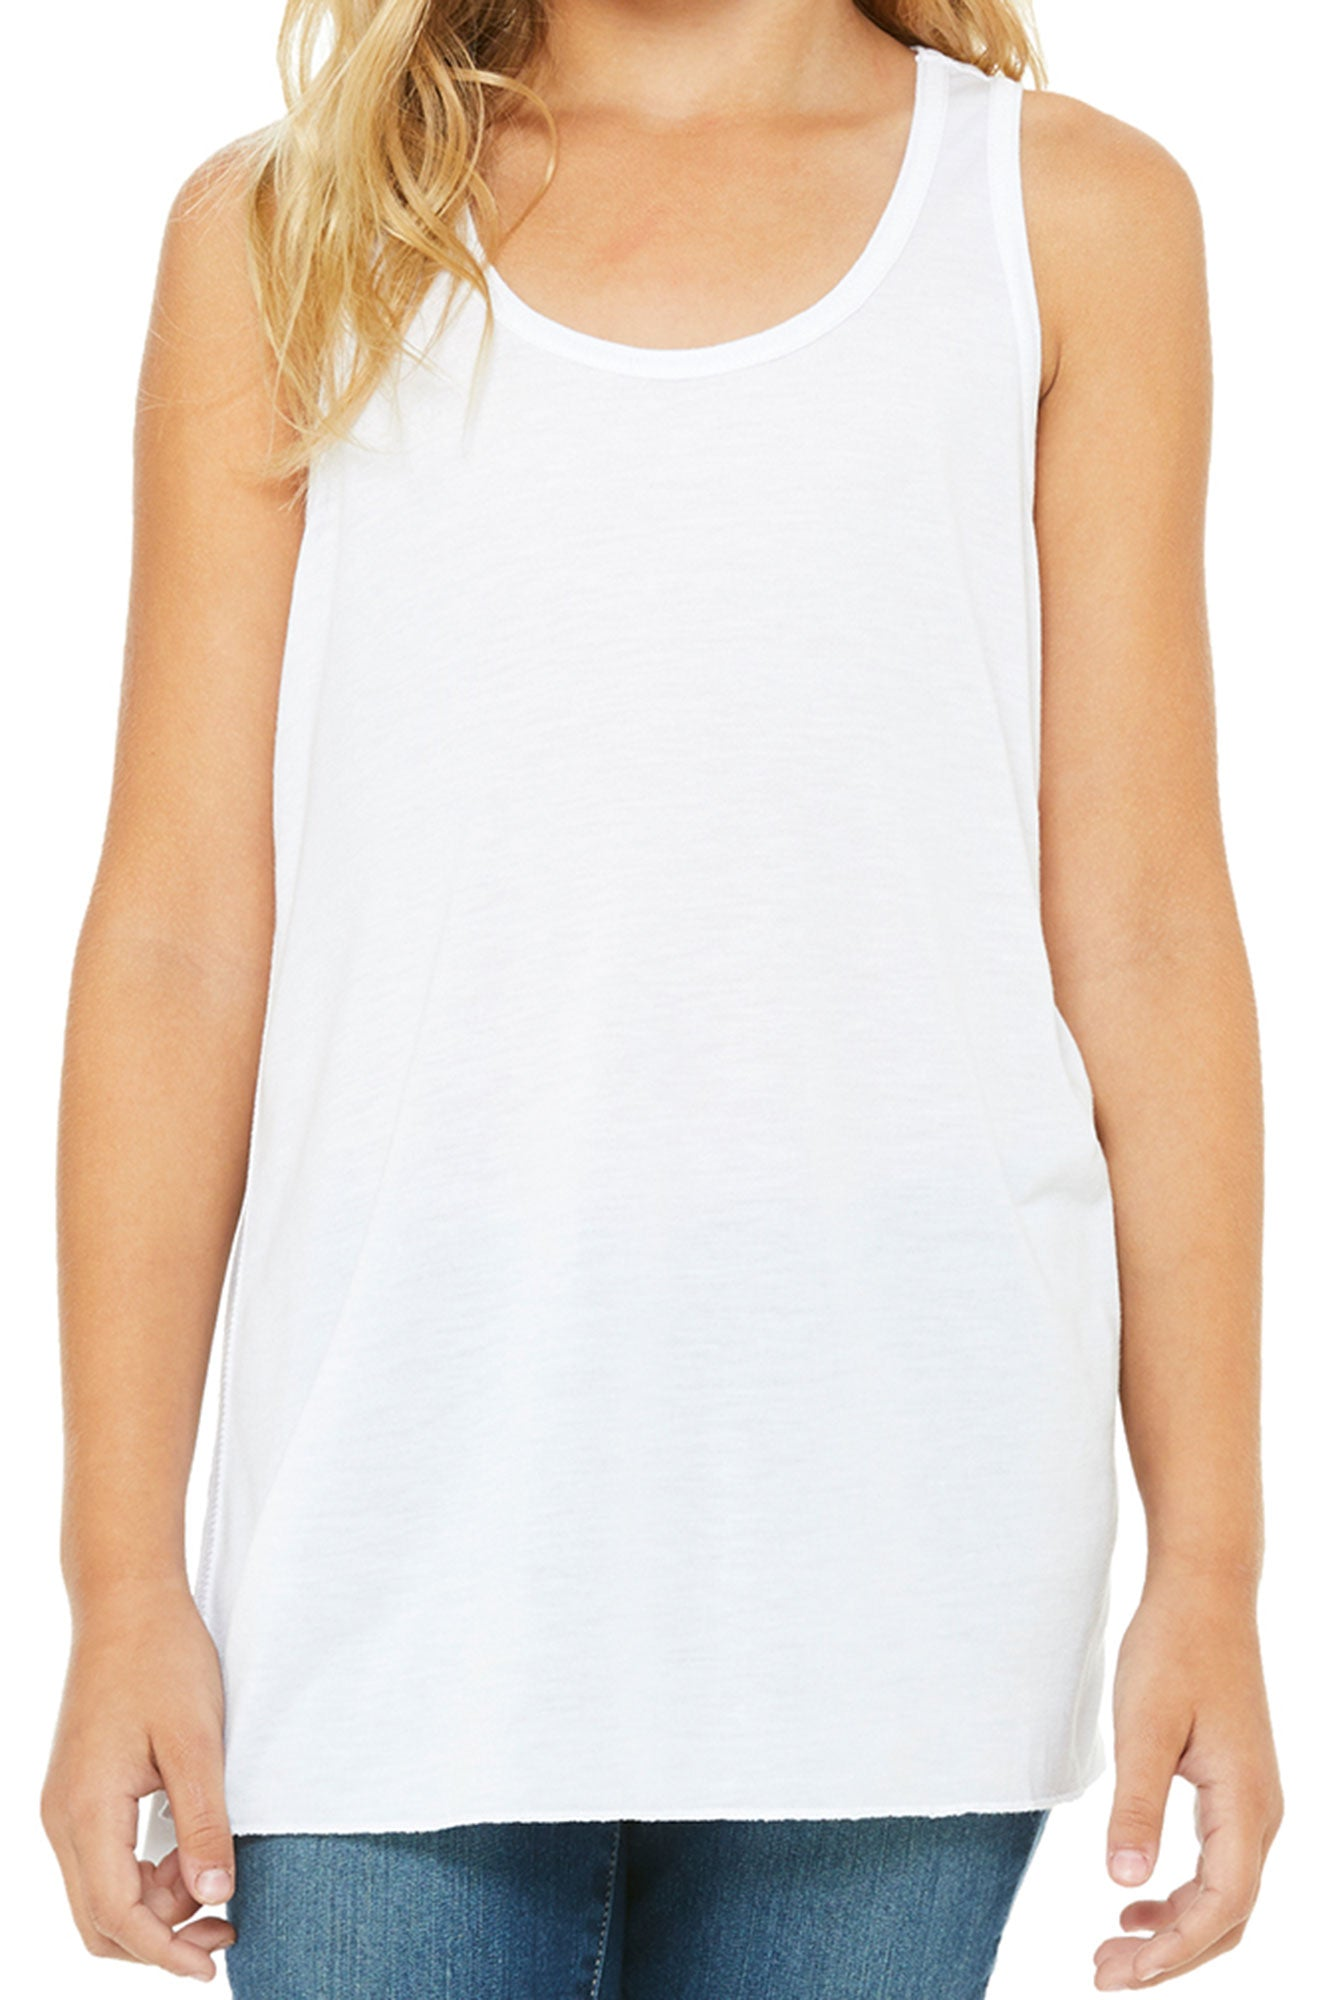 25c7e8e8826cf1 Let Your Light Shine Youth Flowy Racerback Tank